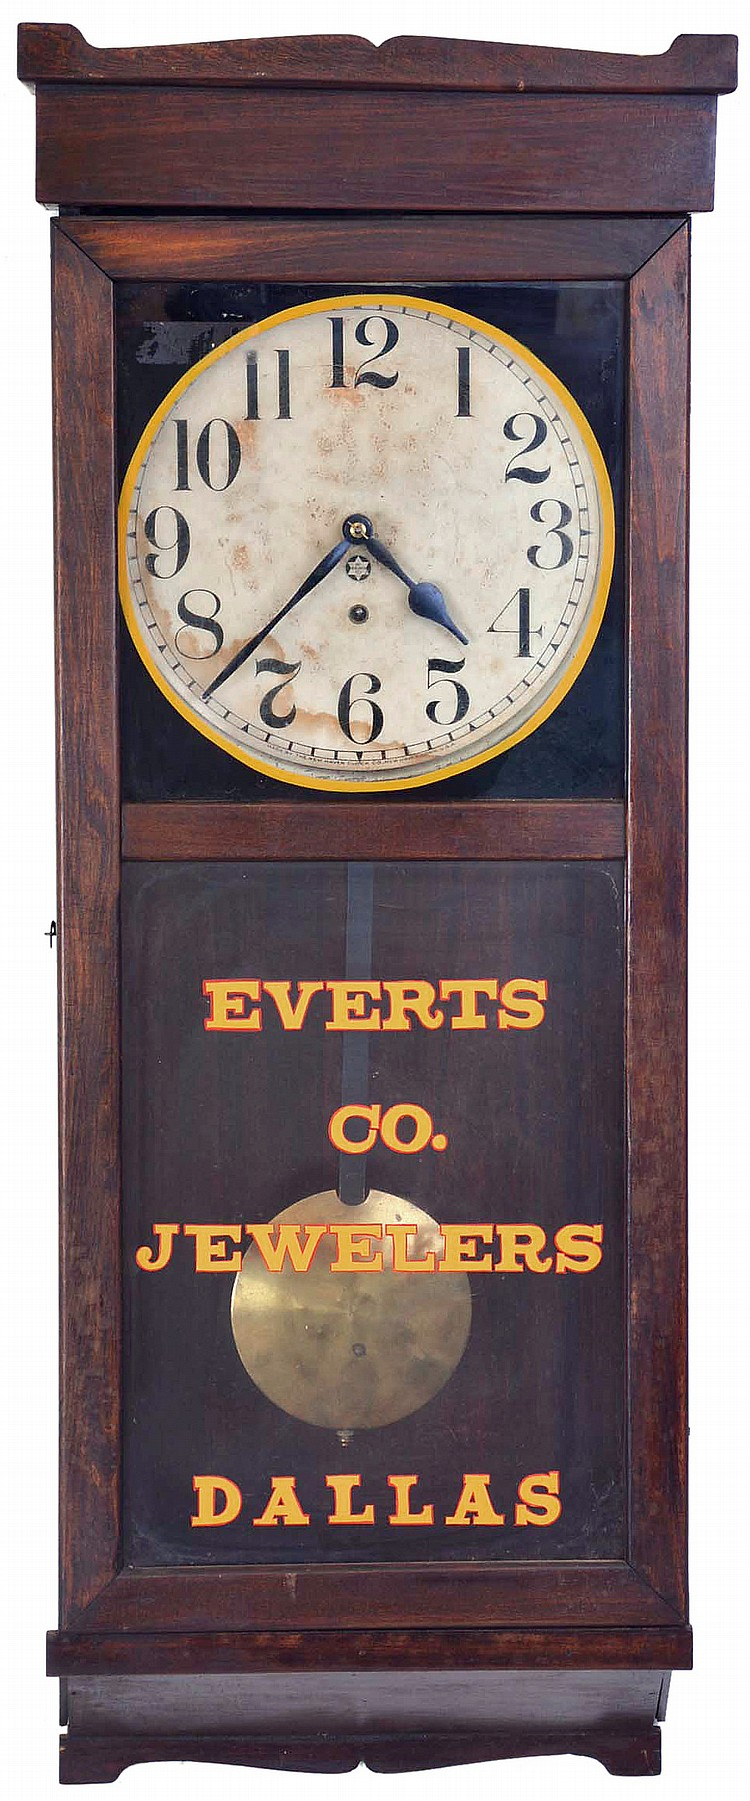 Clocks- 5 (Five): (1) Unmarked short drop school clock with a spring driven 8 day timepiece movement in a rosewood veneered case, c1890. (2) Waterbury, Conn., short drop hanging clock with a spring driven 8 day time, strike and simple calendar